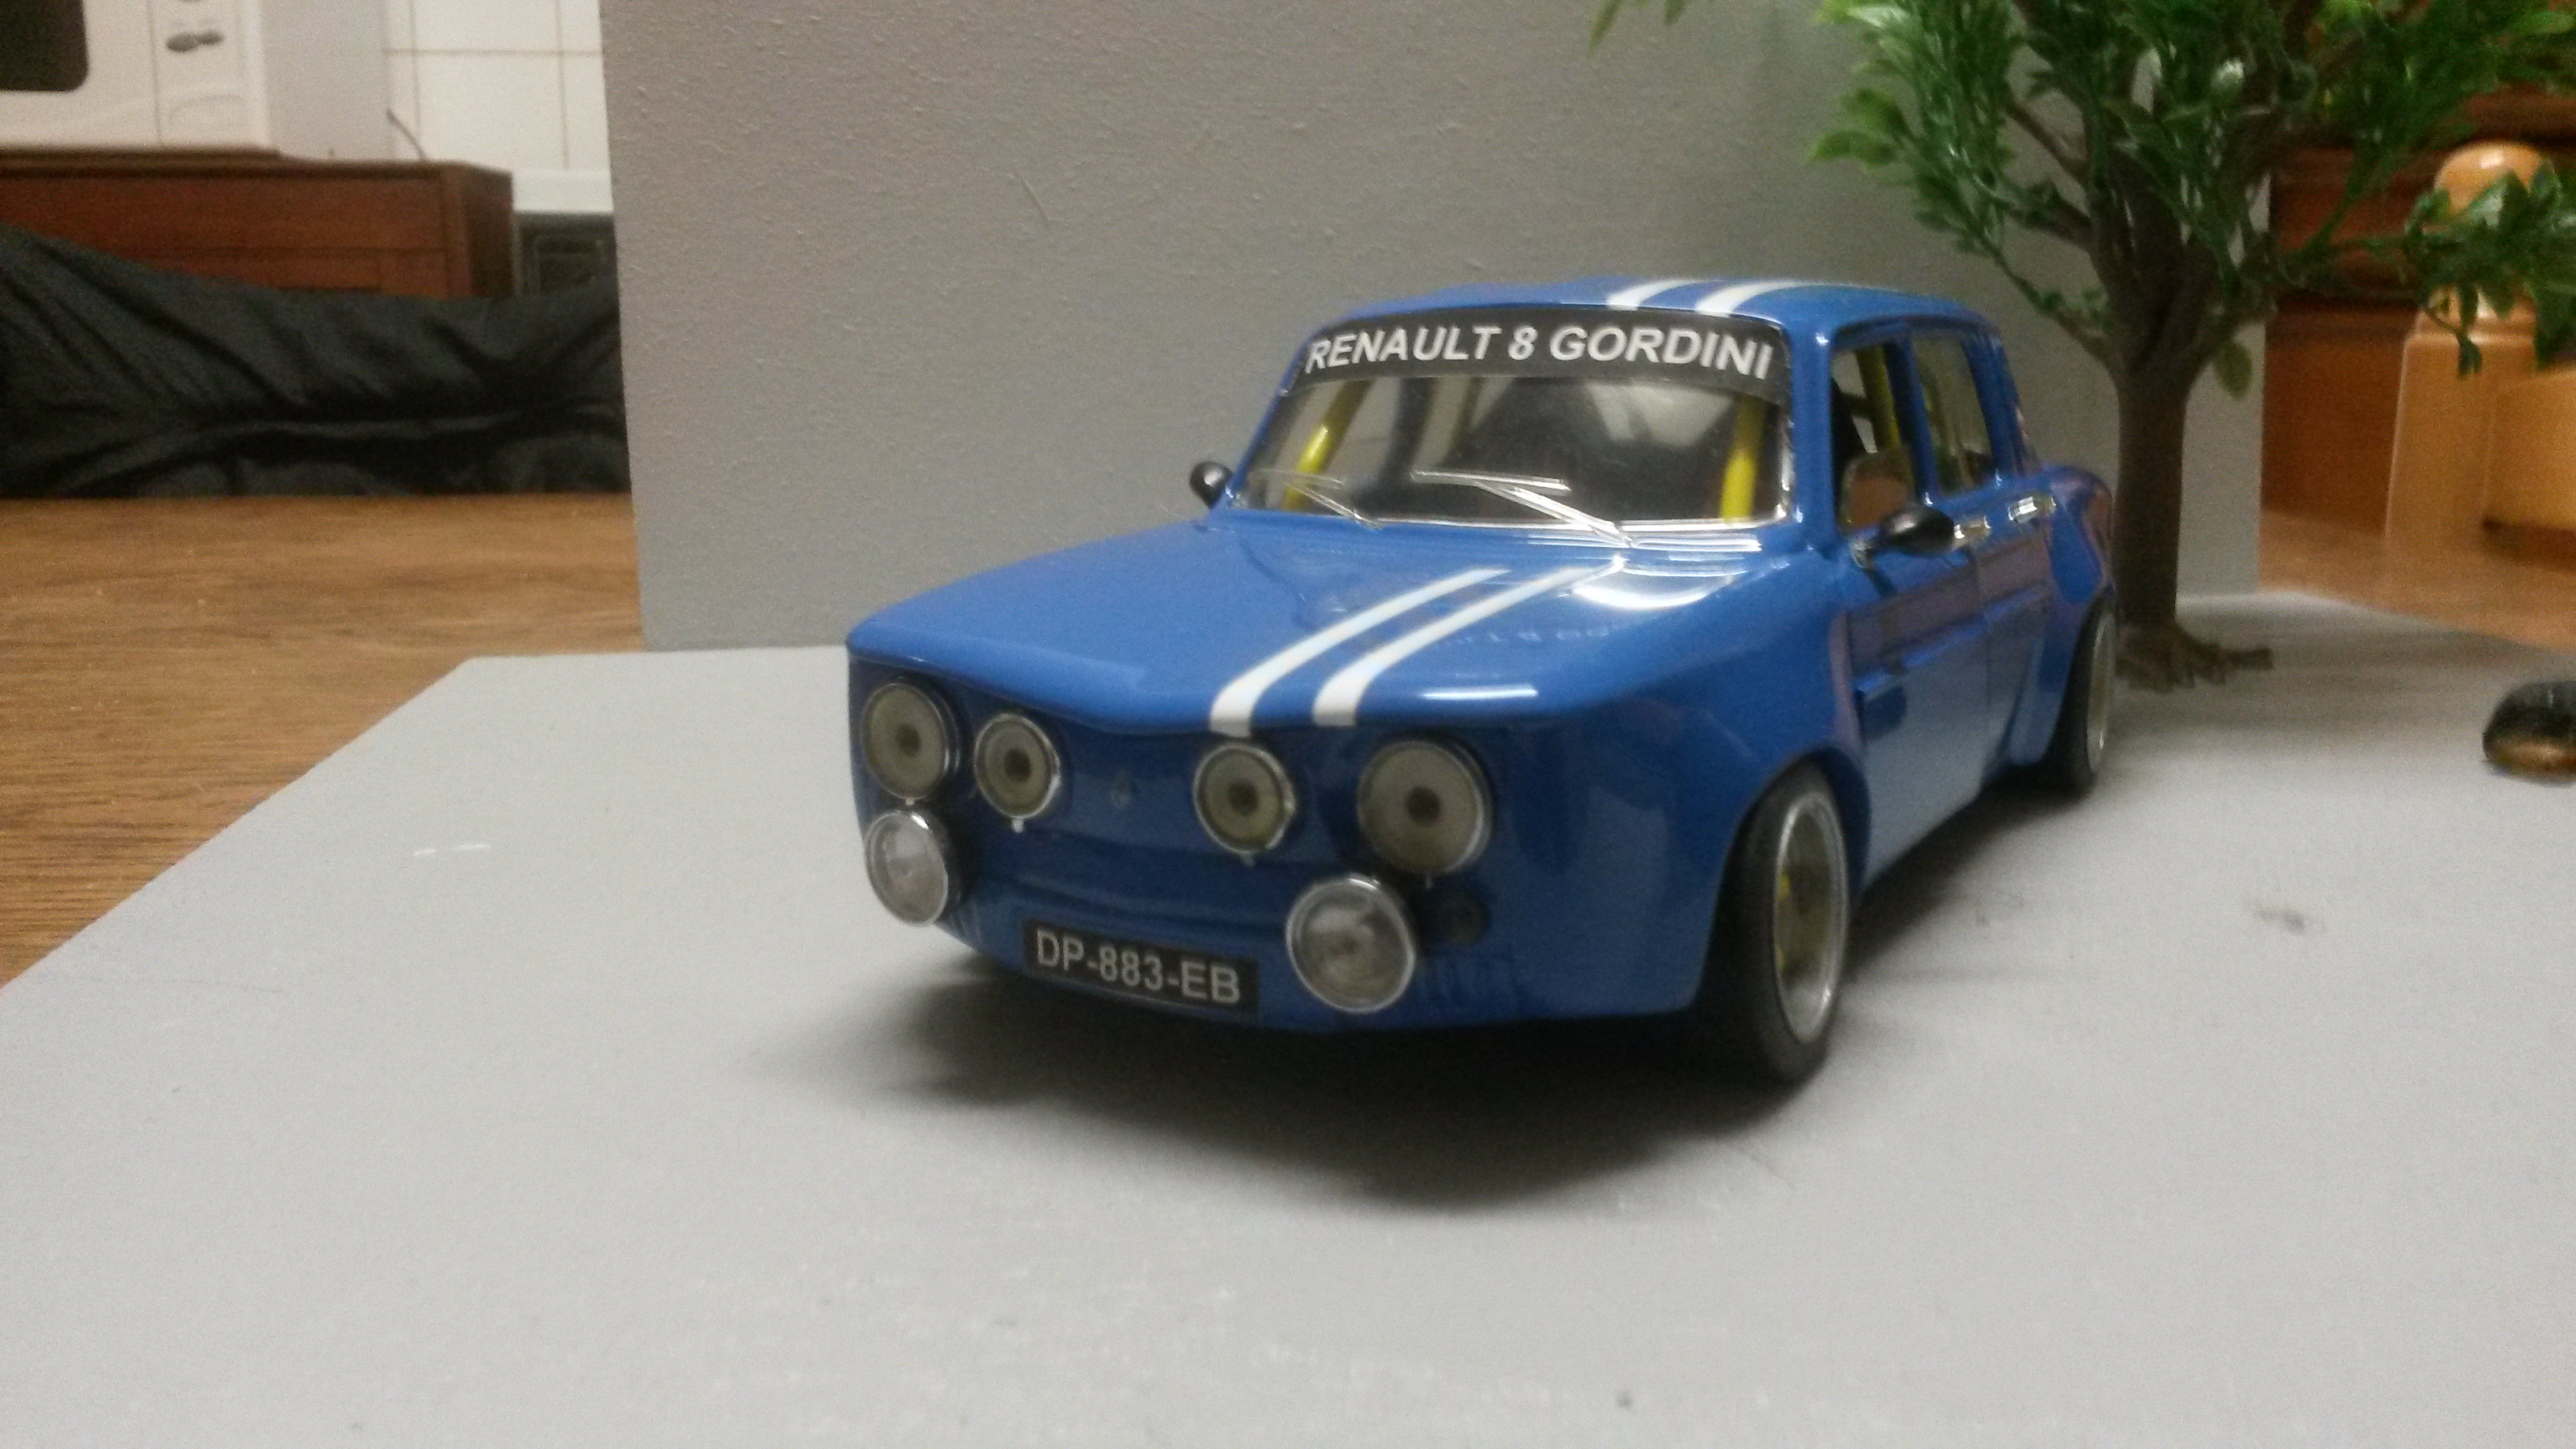 Renault 8 Gordini bleu kit large groupe A tuning . Renault 8 Gordini bleu kit large groupe A modellauto